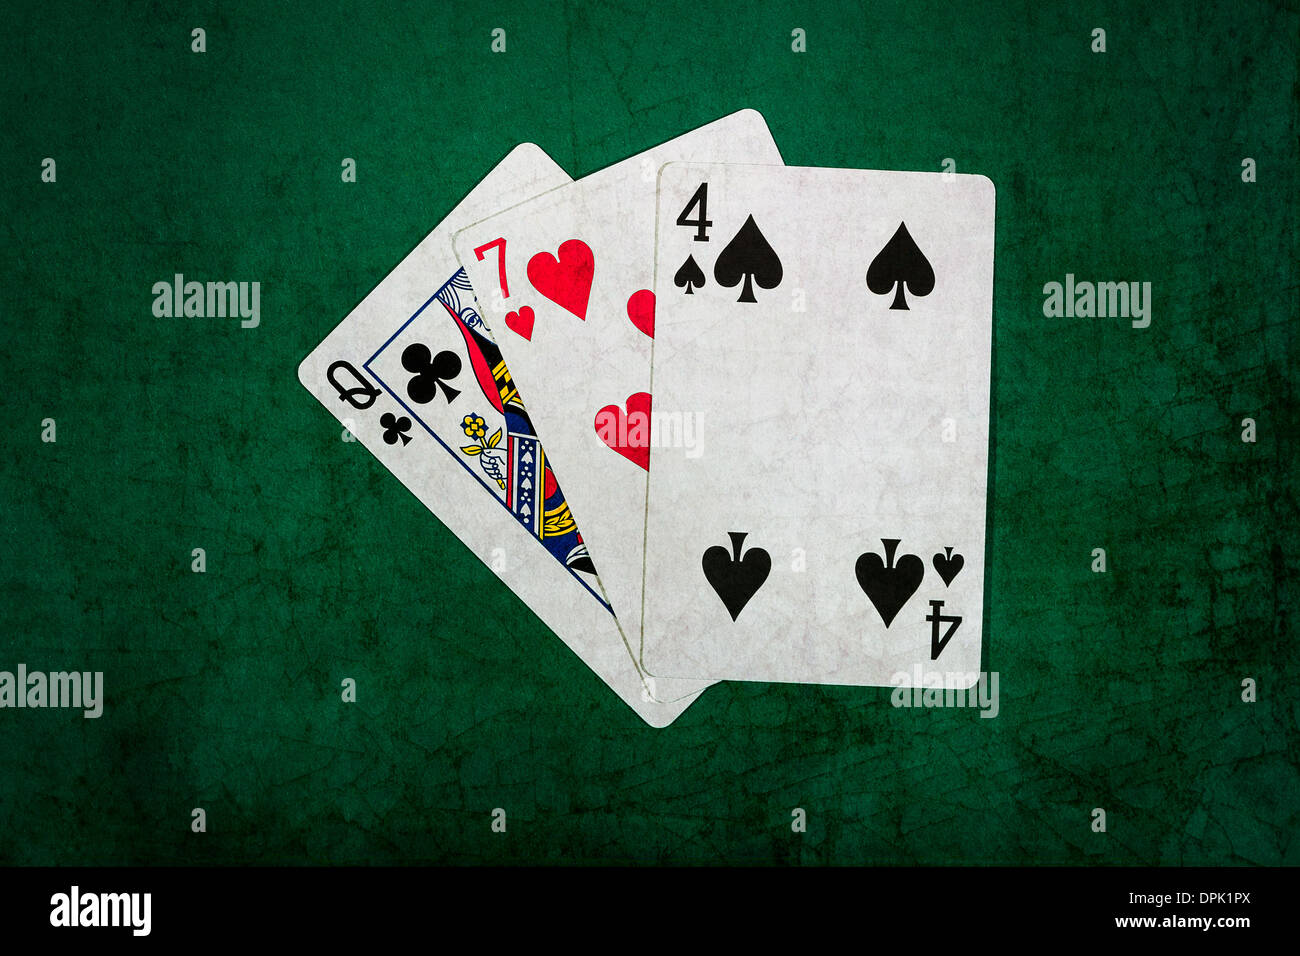 Twenty One 7. Closeup view of playing cards forming the blackjack combination of twenty one points. - Stock Image